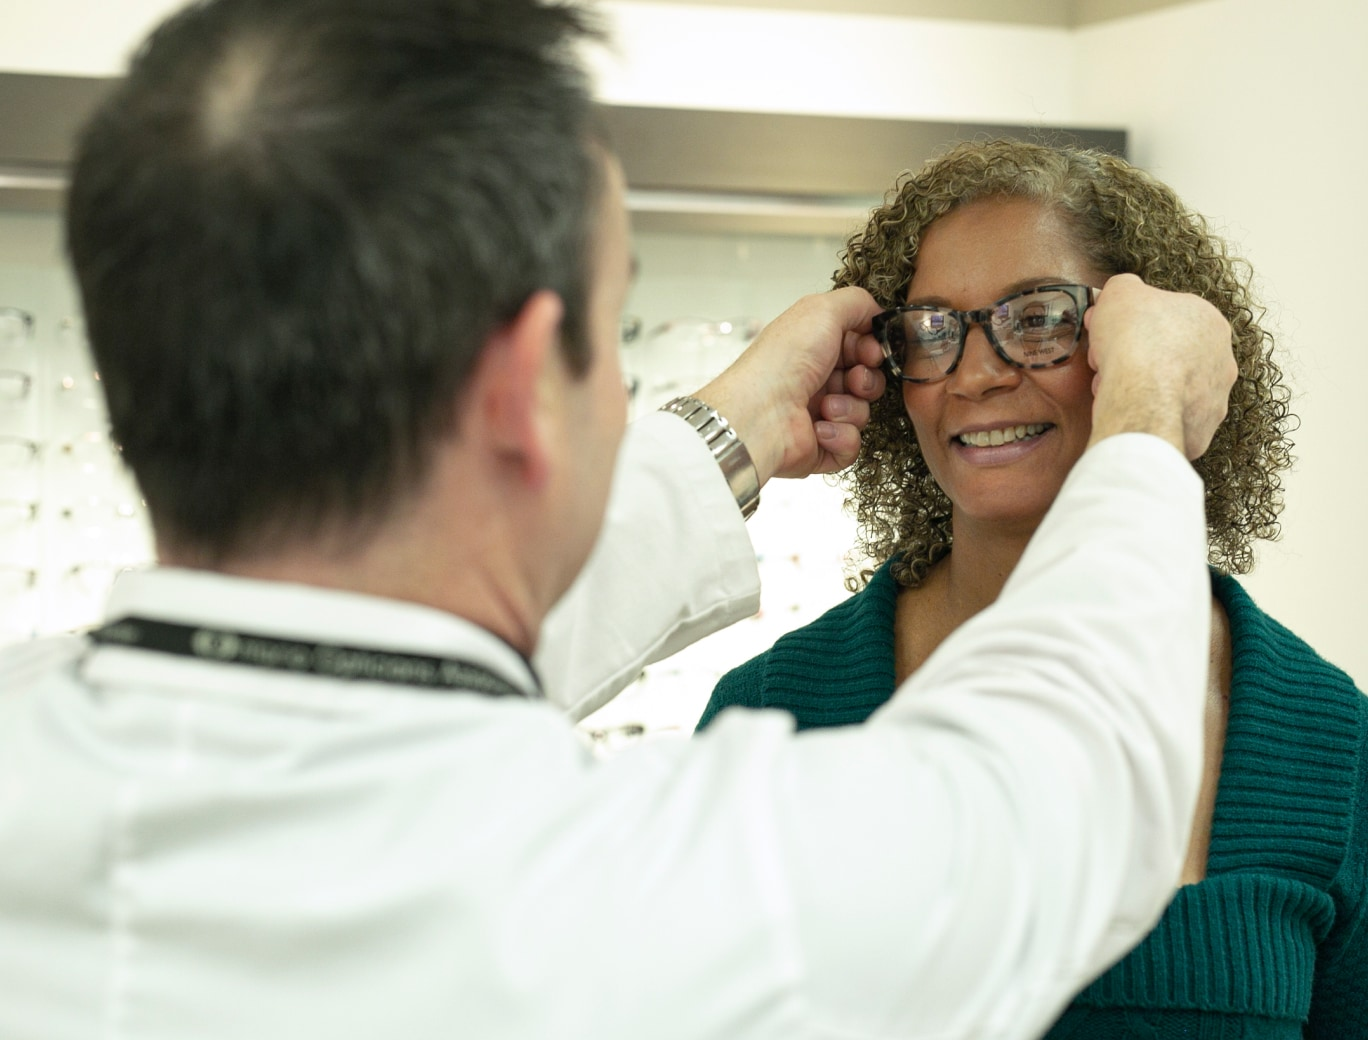 Optical employee in white coat helping fit woman with glasses.